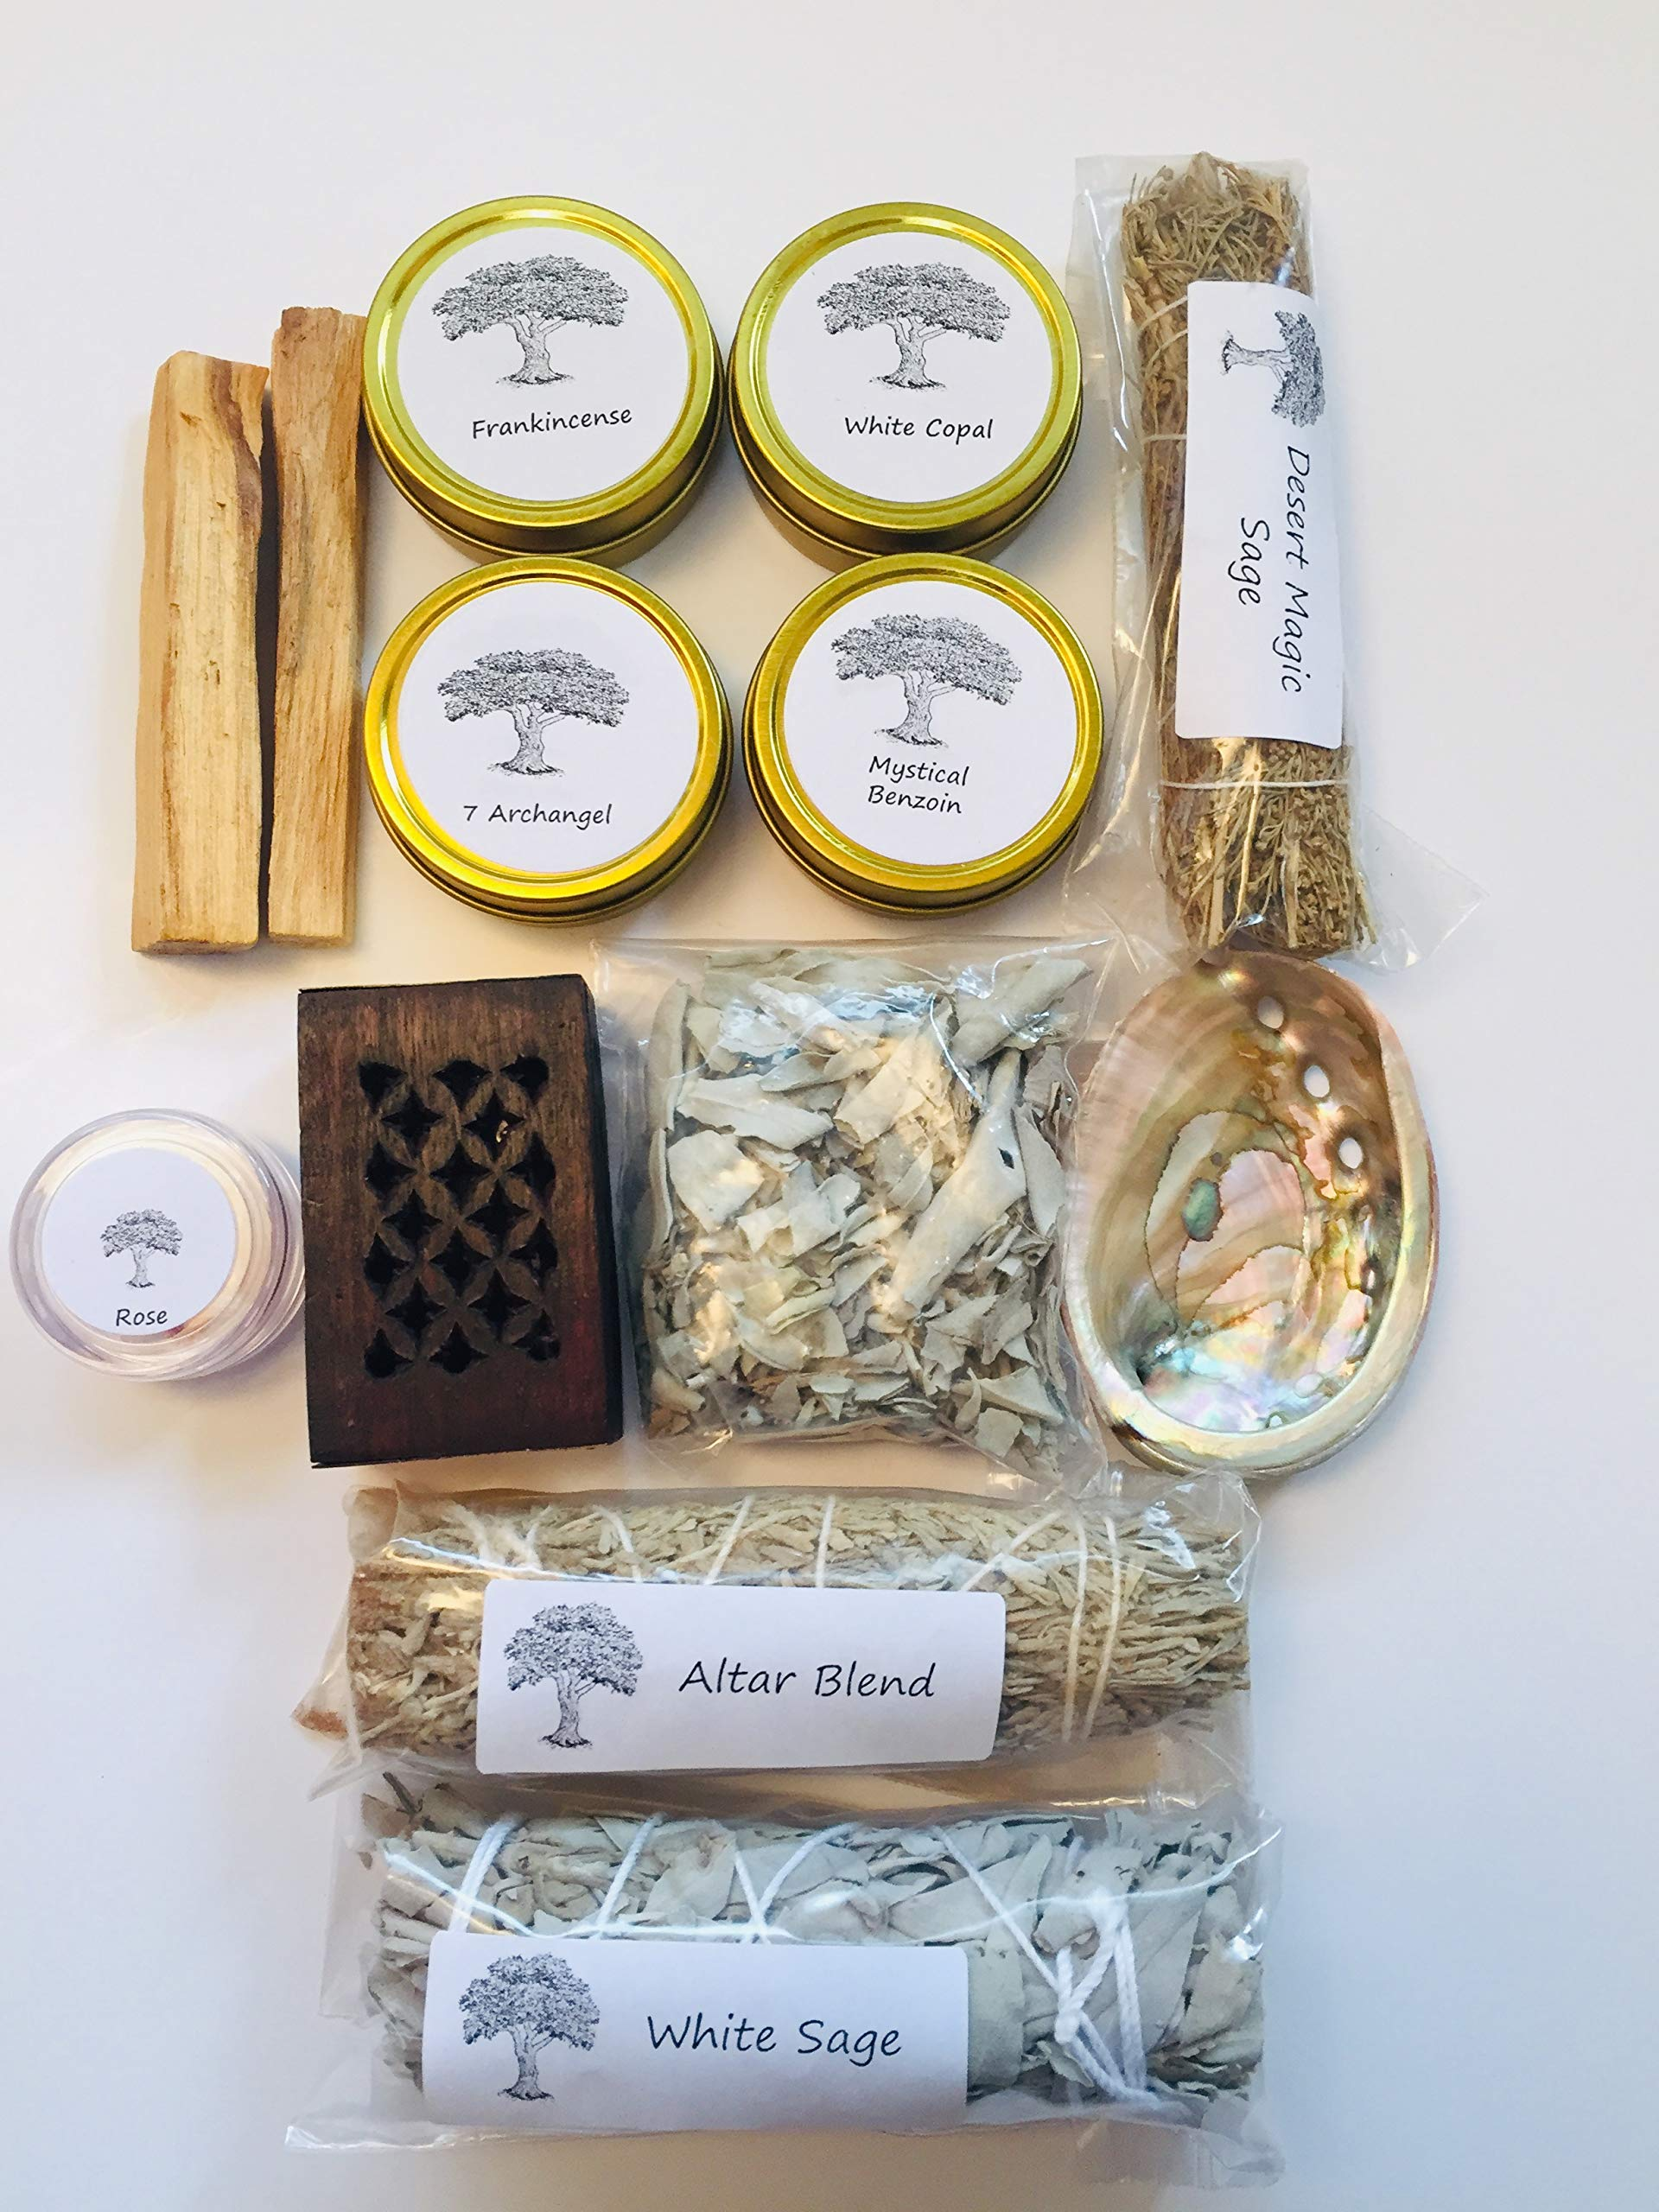 Resin Incense and Sage Smudges Variety Gift Kit includes, Amber Resin, Rose Resin, White Copal, Mystical Benzoin, Frankincense, White Sage Smudge, Desert Sage, Palo Santo Sticks and Abalone Shell by Sacred Scents For You (Image #3)